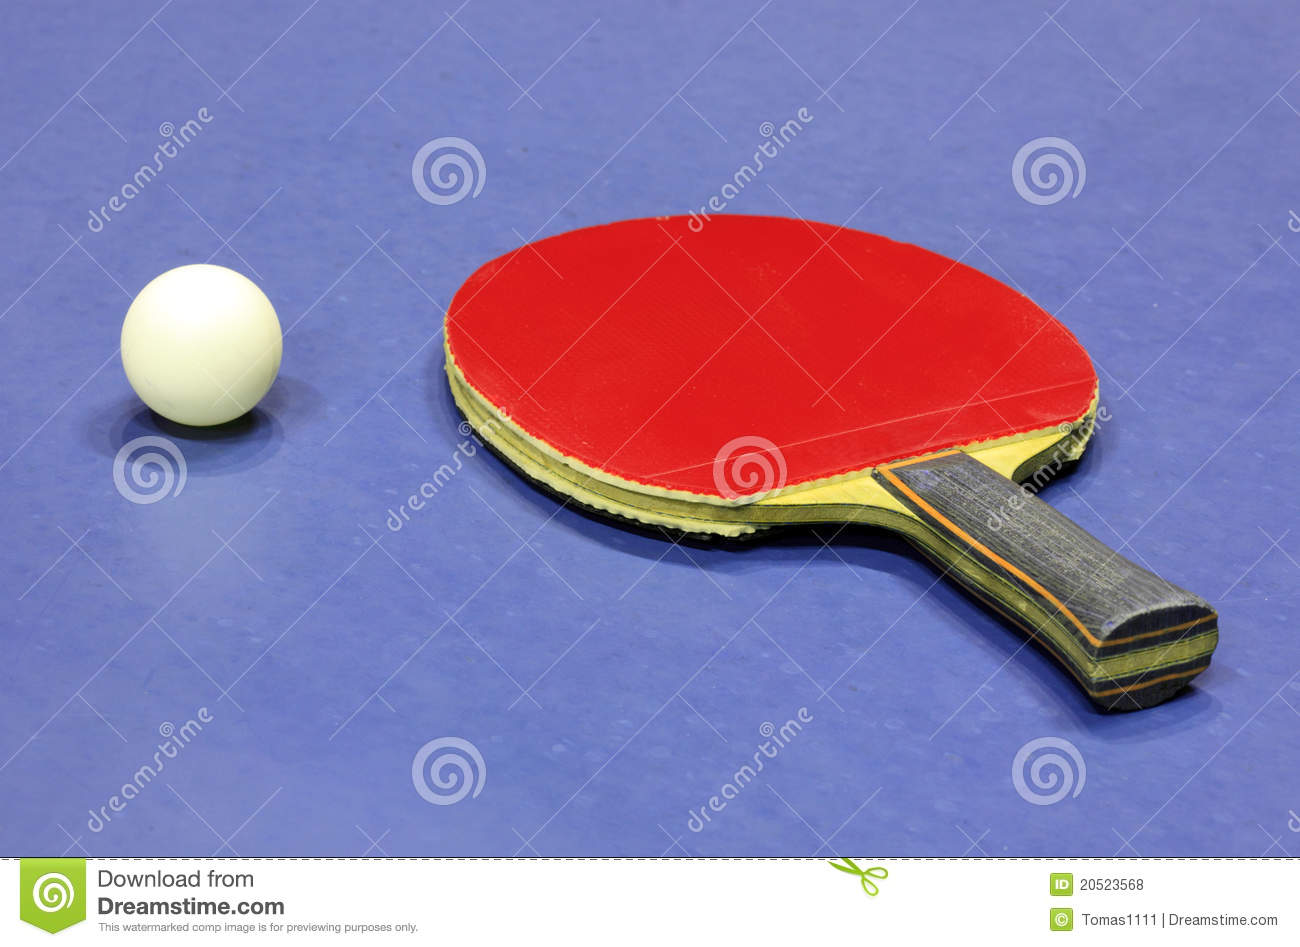 Equipment for table tennis royalty free stock photos image 20523568 - Equipment for table tennis ...